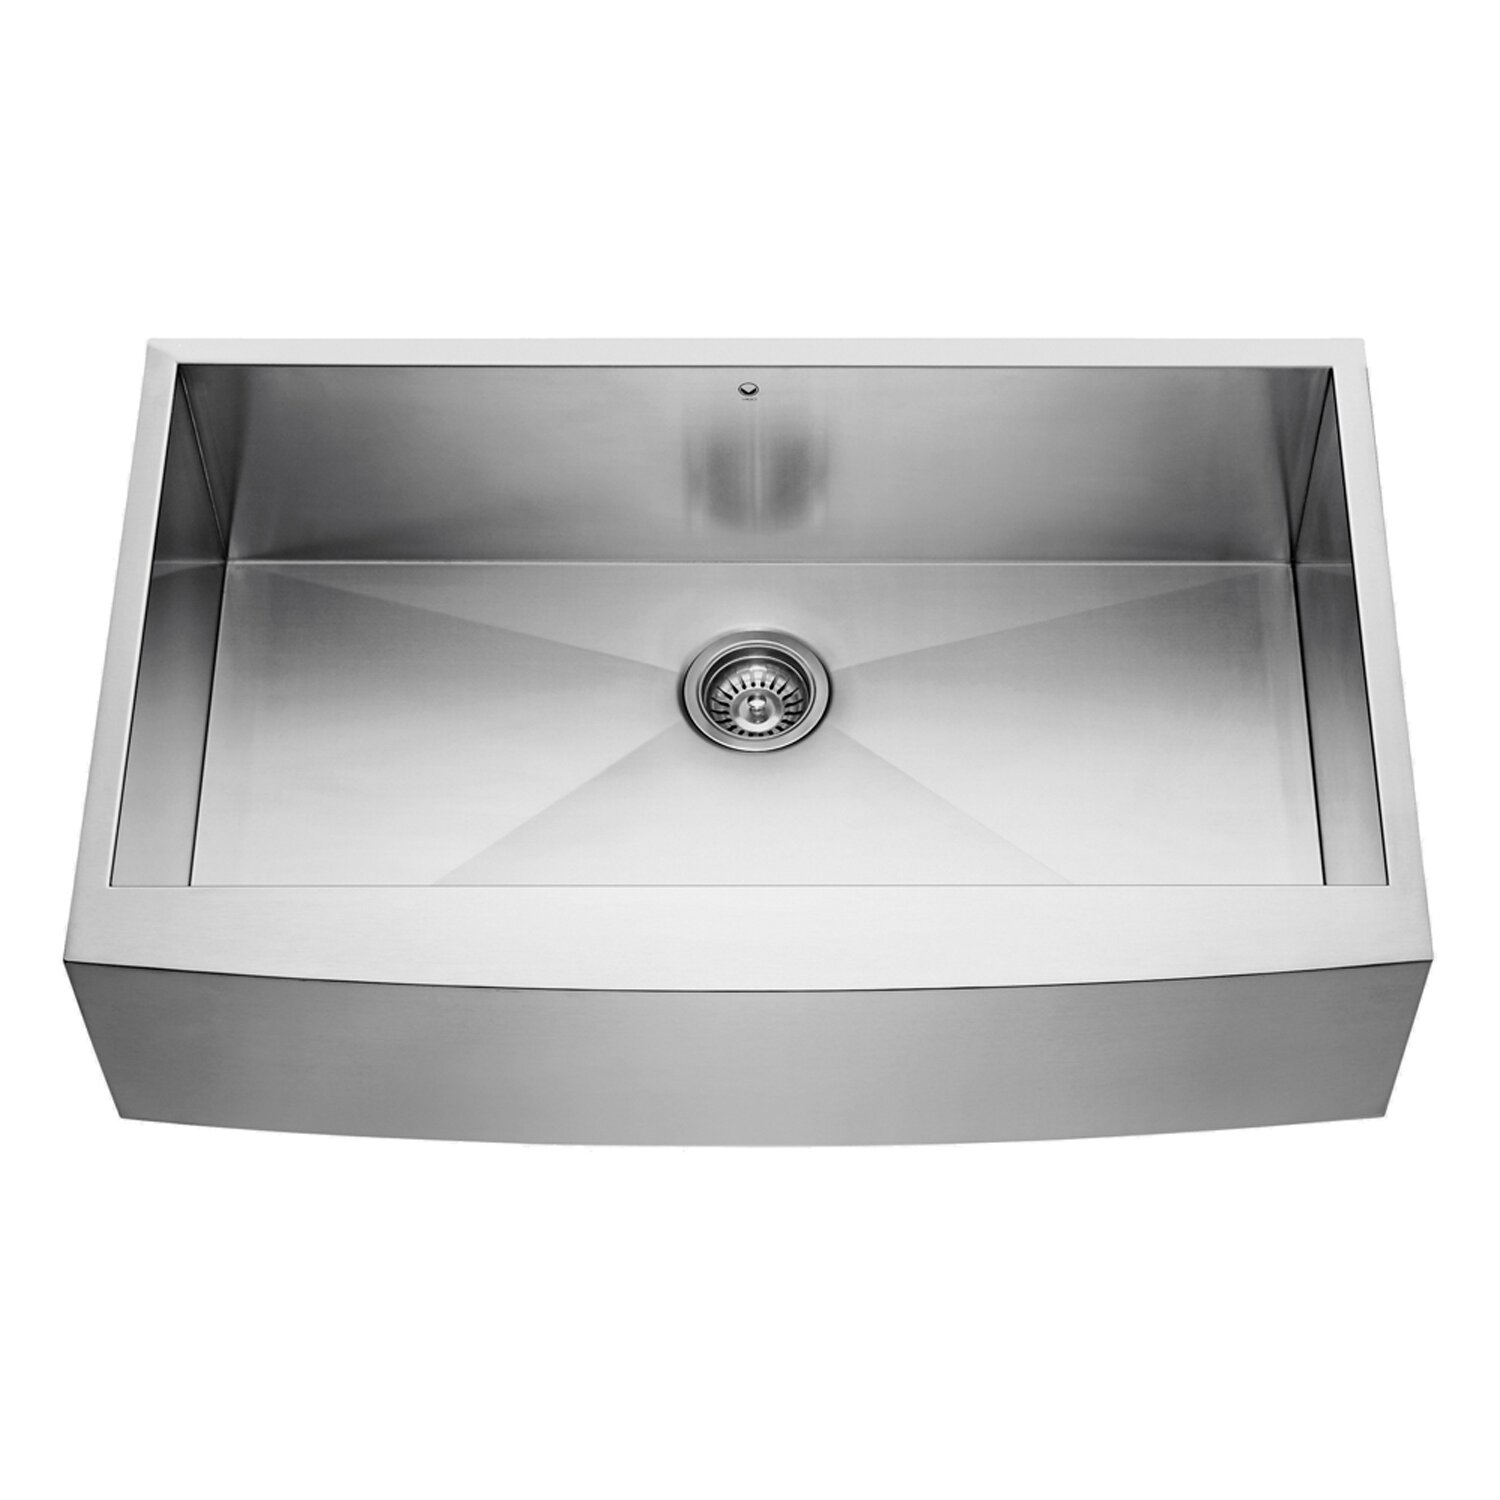 Apron Sink 36 : 36 inch Farmhouse Apron Single Bowl 16 Gauge Stainless Steel Kitchen ...